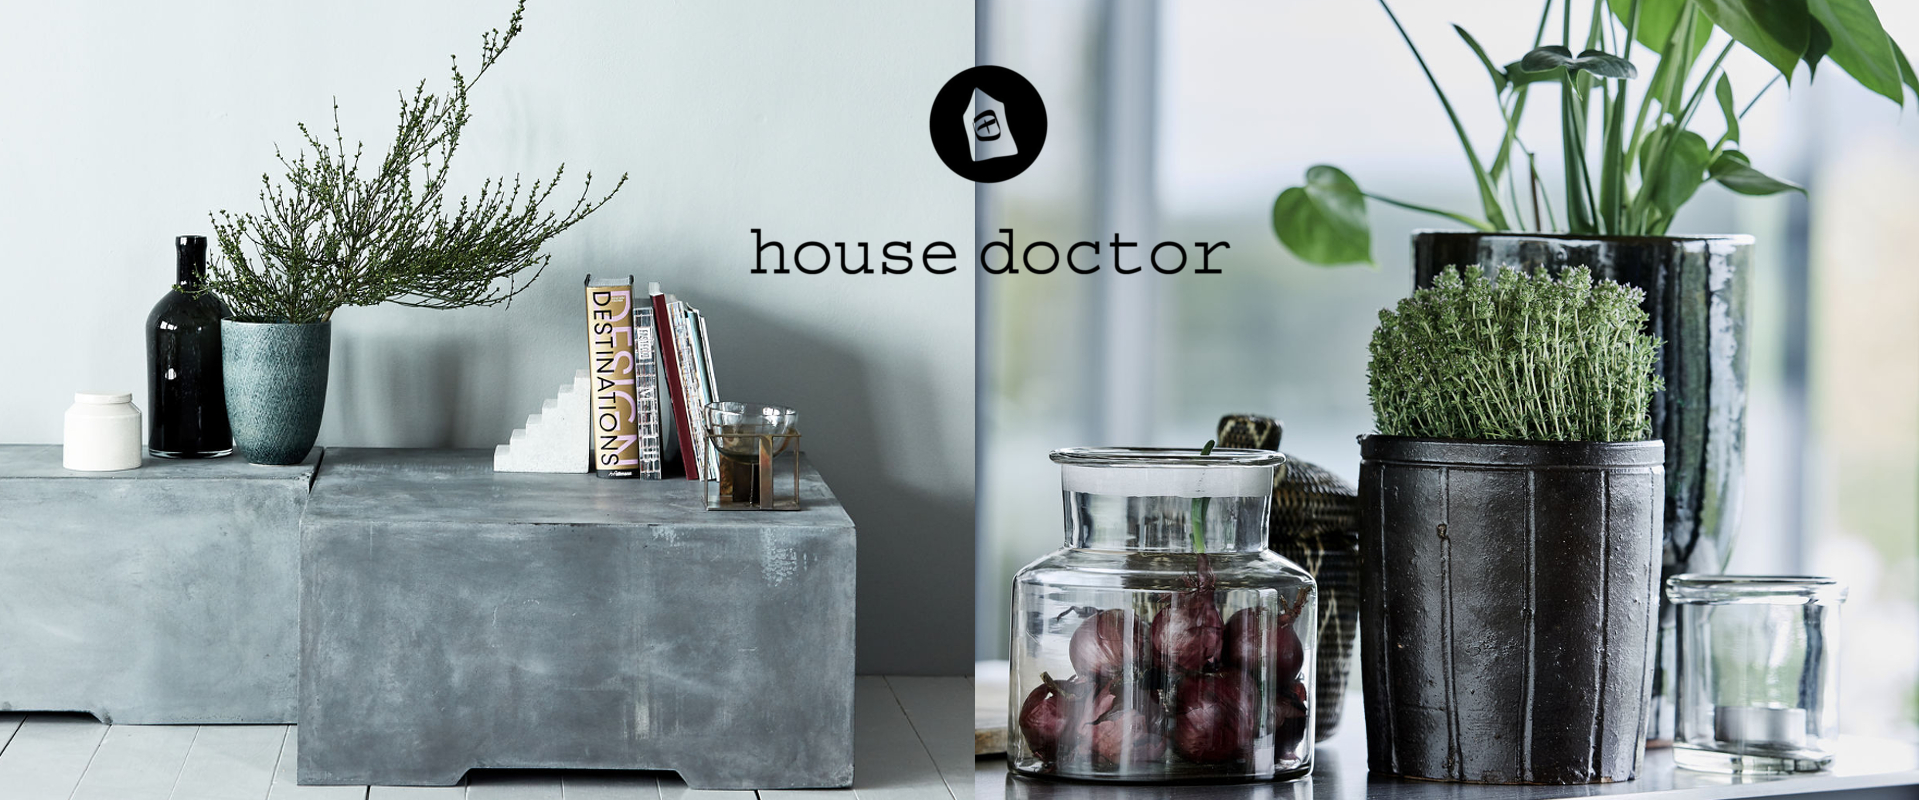 17-07-2019-House Doctor